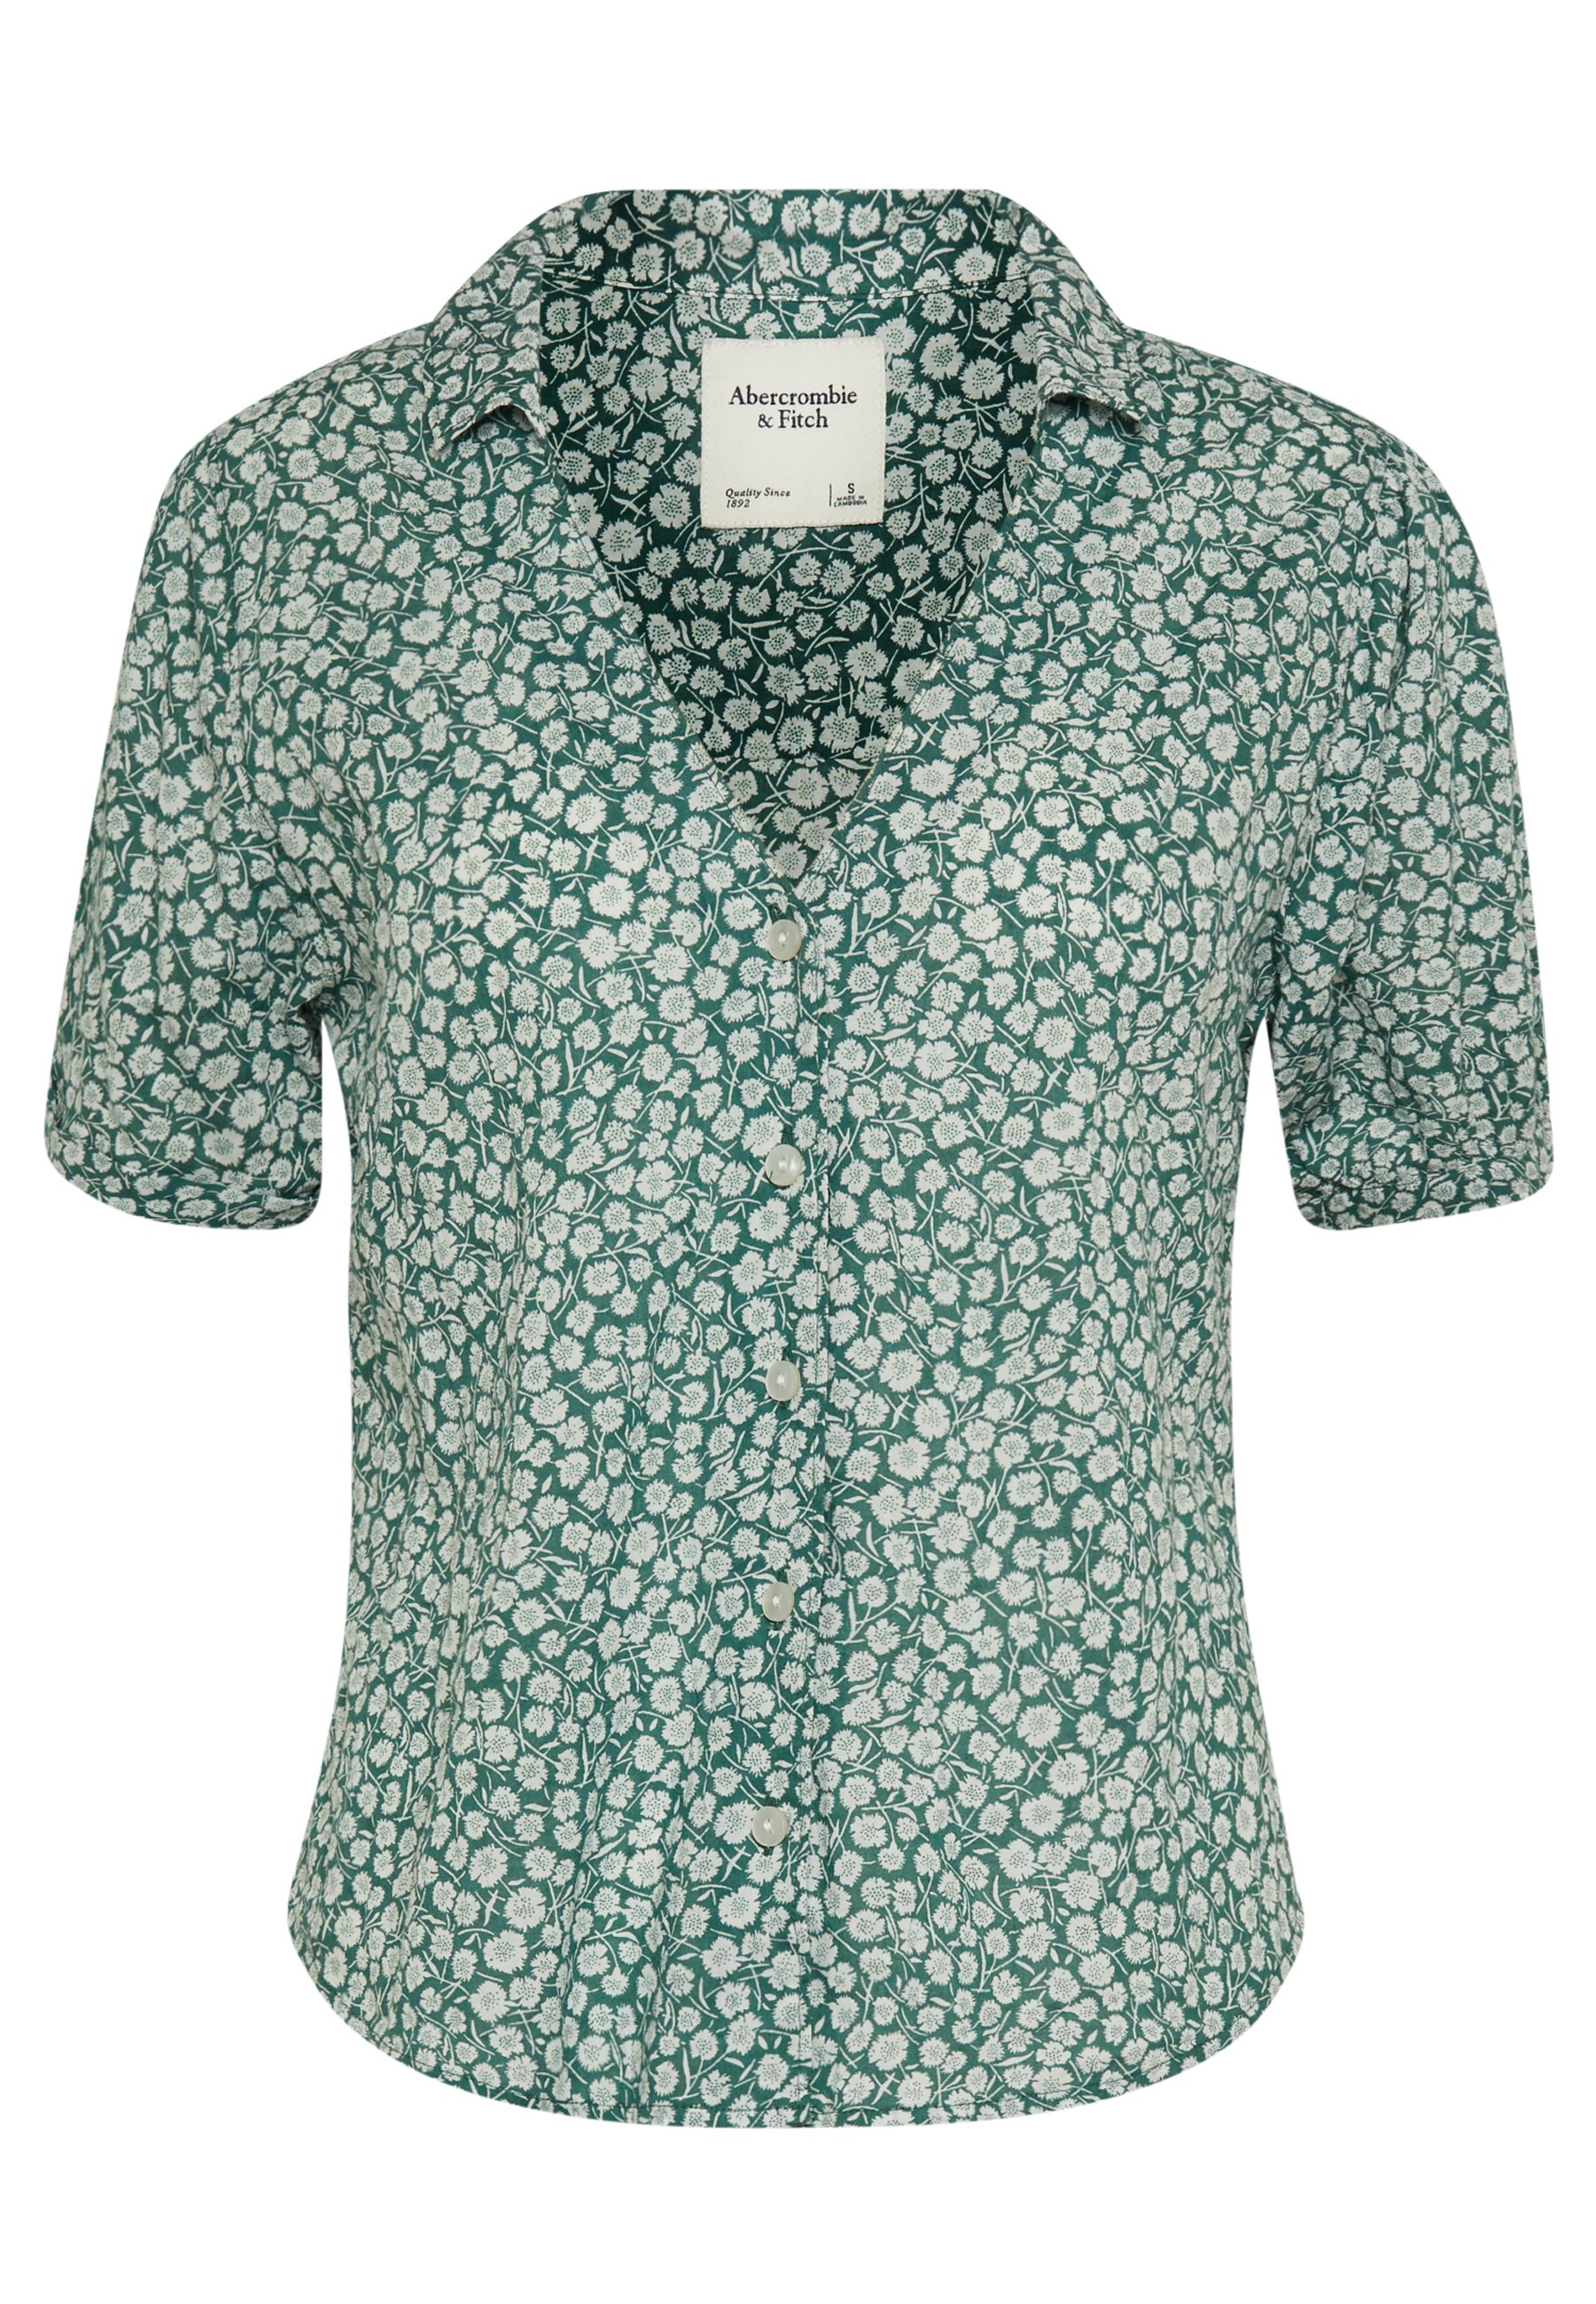 Abercrombie & Fitch SUMMER Skjorte green Zalando.no